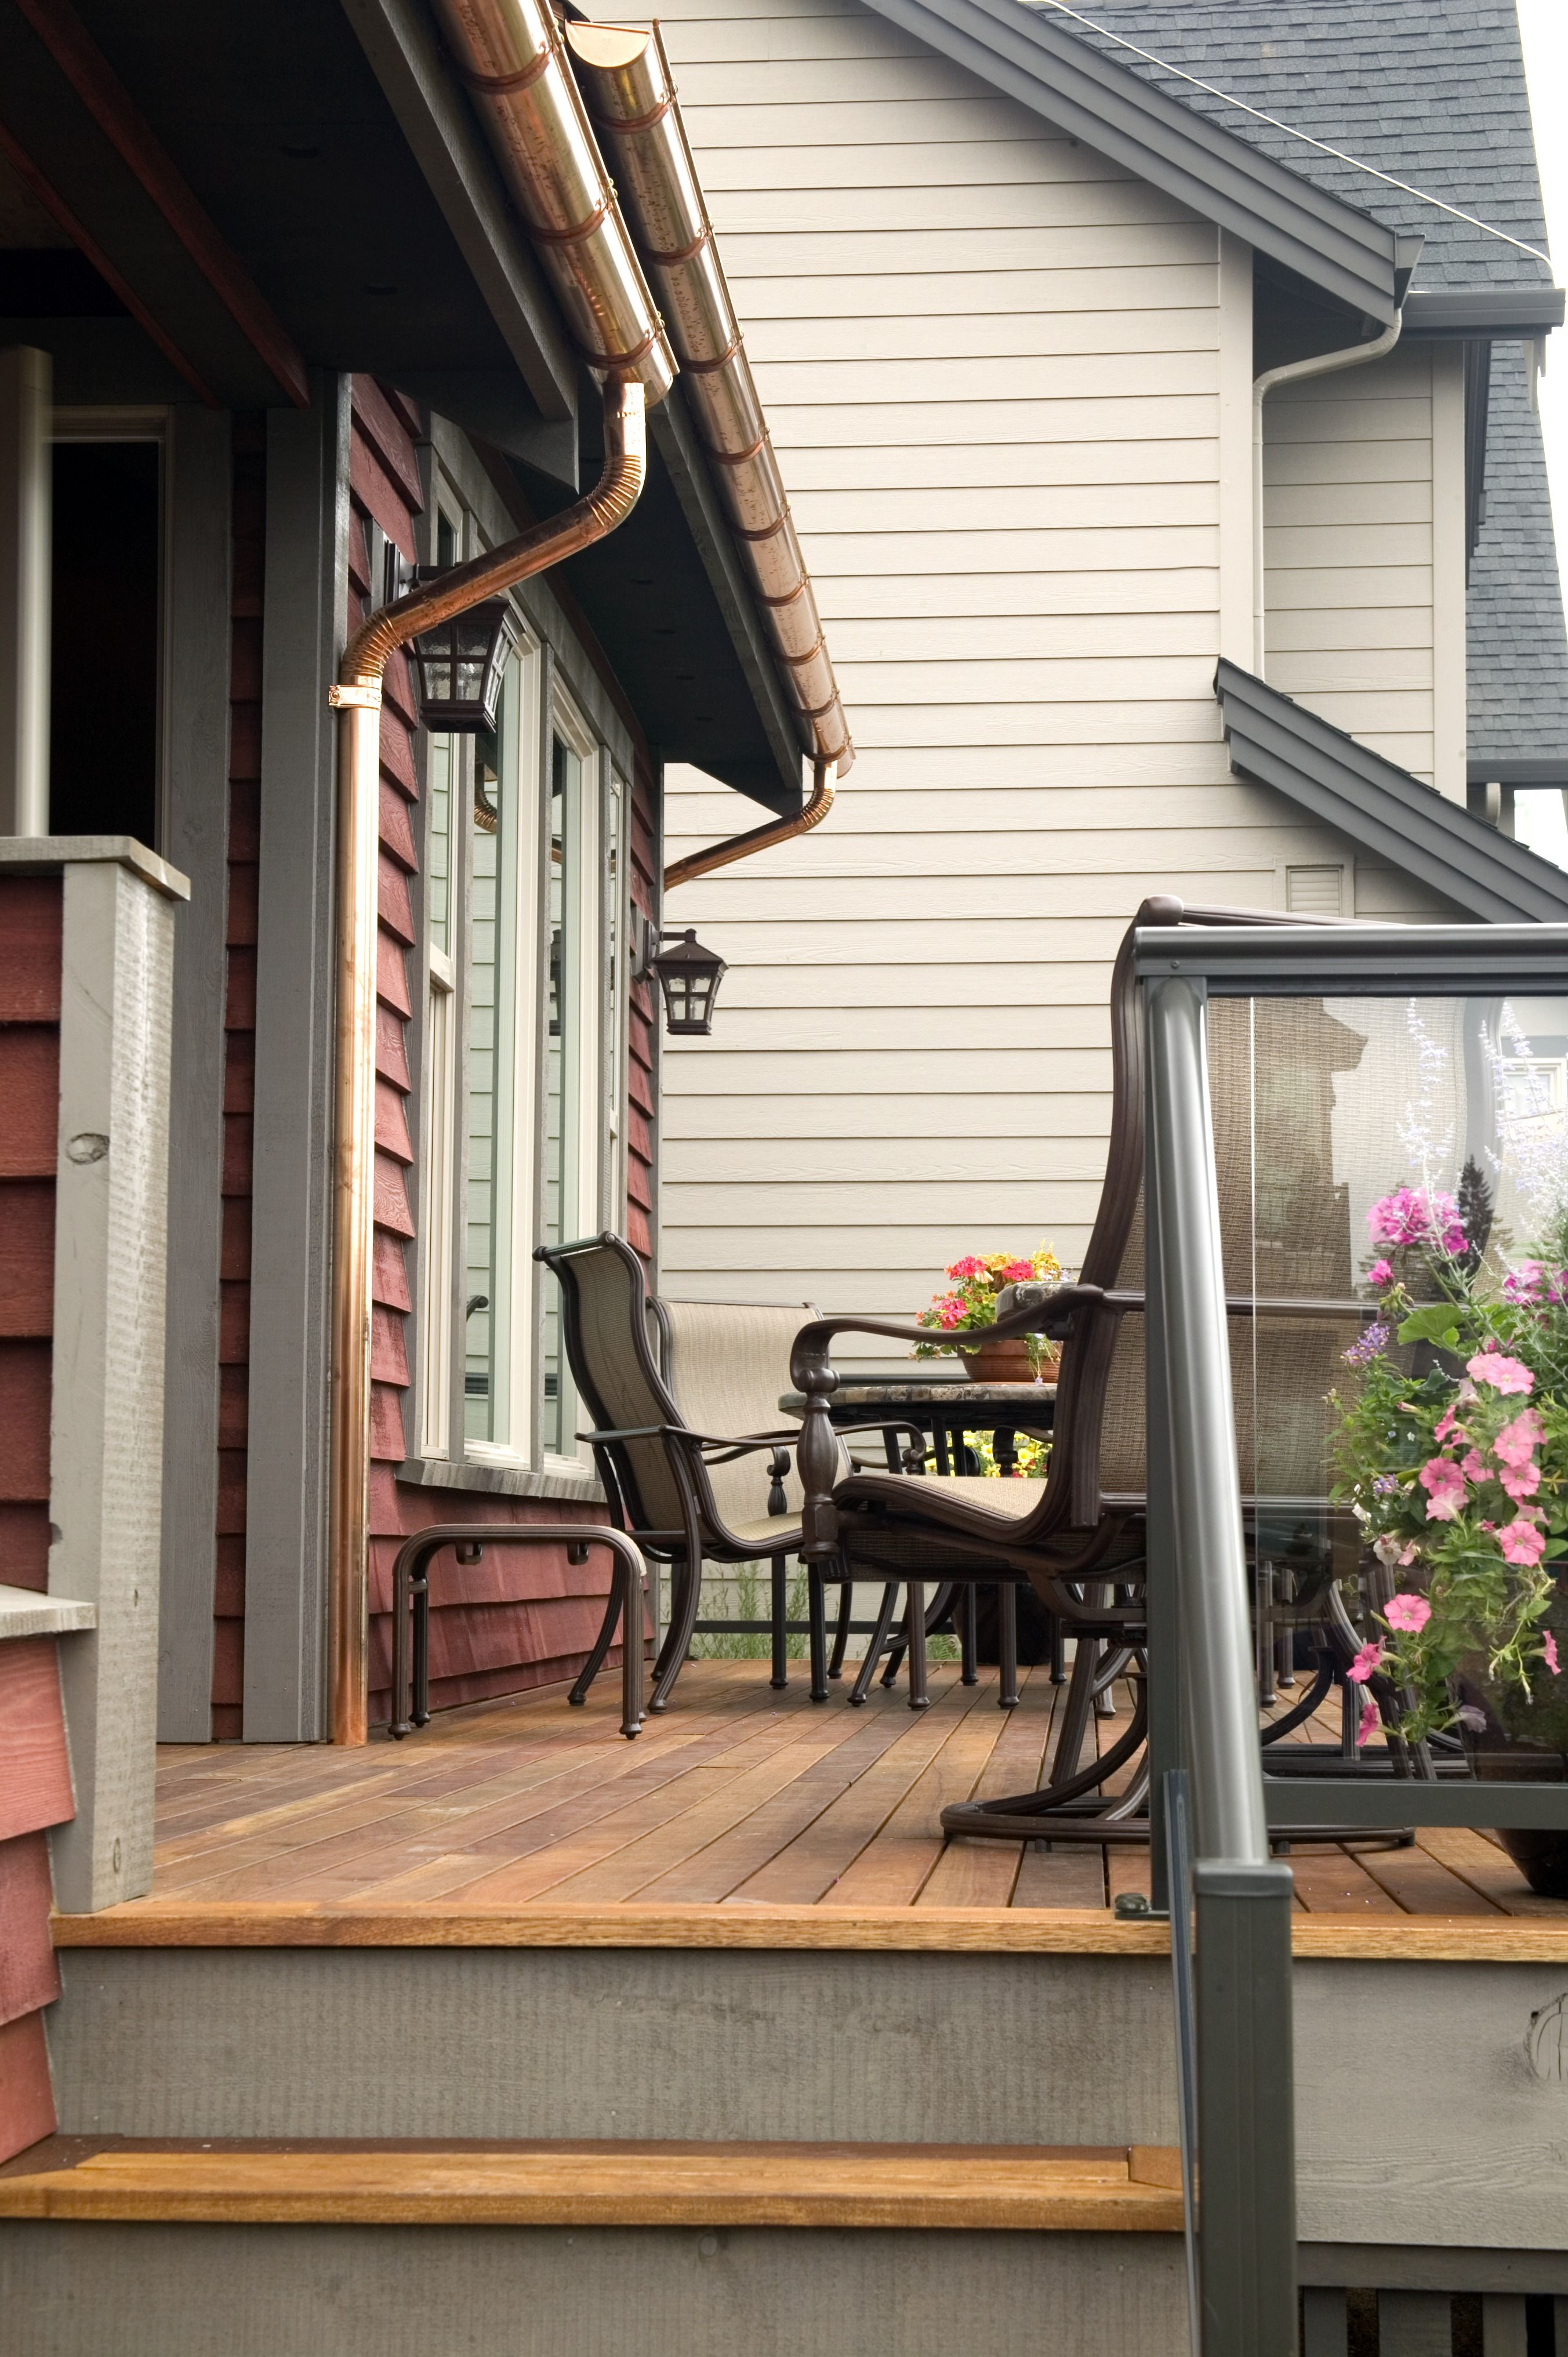 Tigerwood Decking Prices Tiger Wood Decking Price Per Square Foot Building A Deck Outdoor Living Deck Deck Building Cost